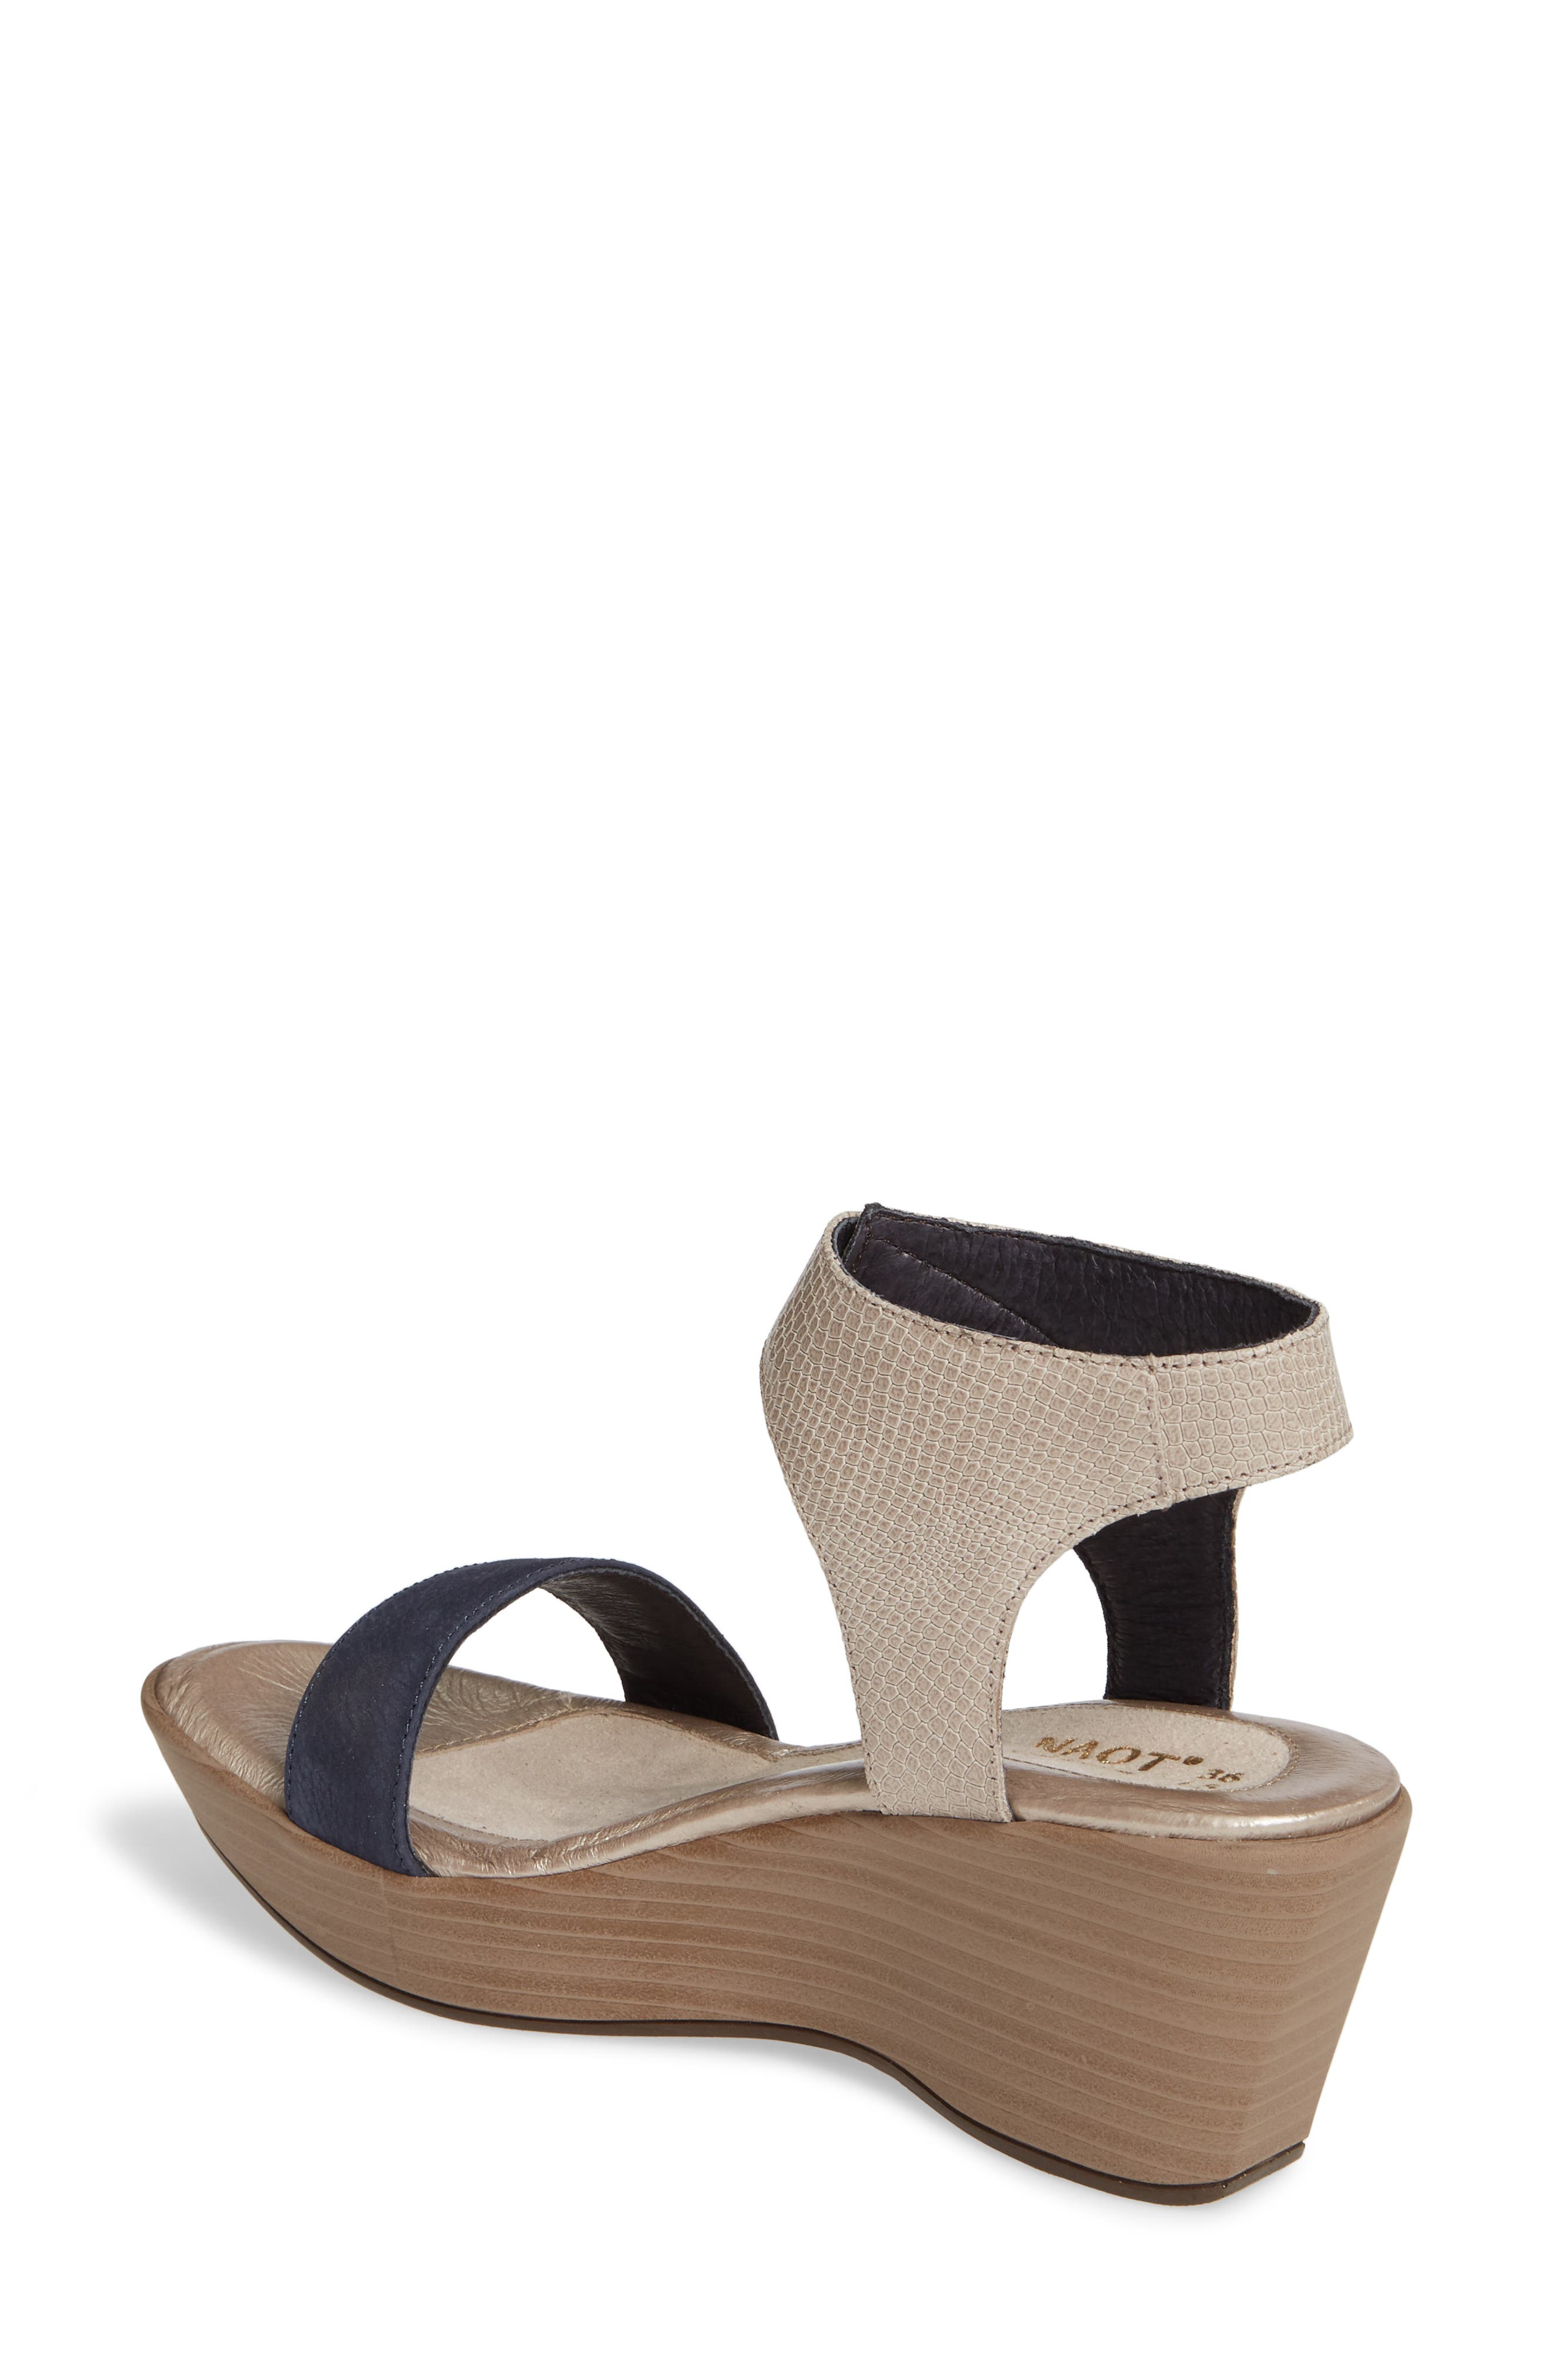 NAOT, Caprice Wedge Sandal, Alternate thumbnail 2, color, BEIGE LIZARD/ NAVY VELVET